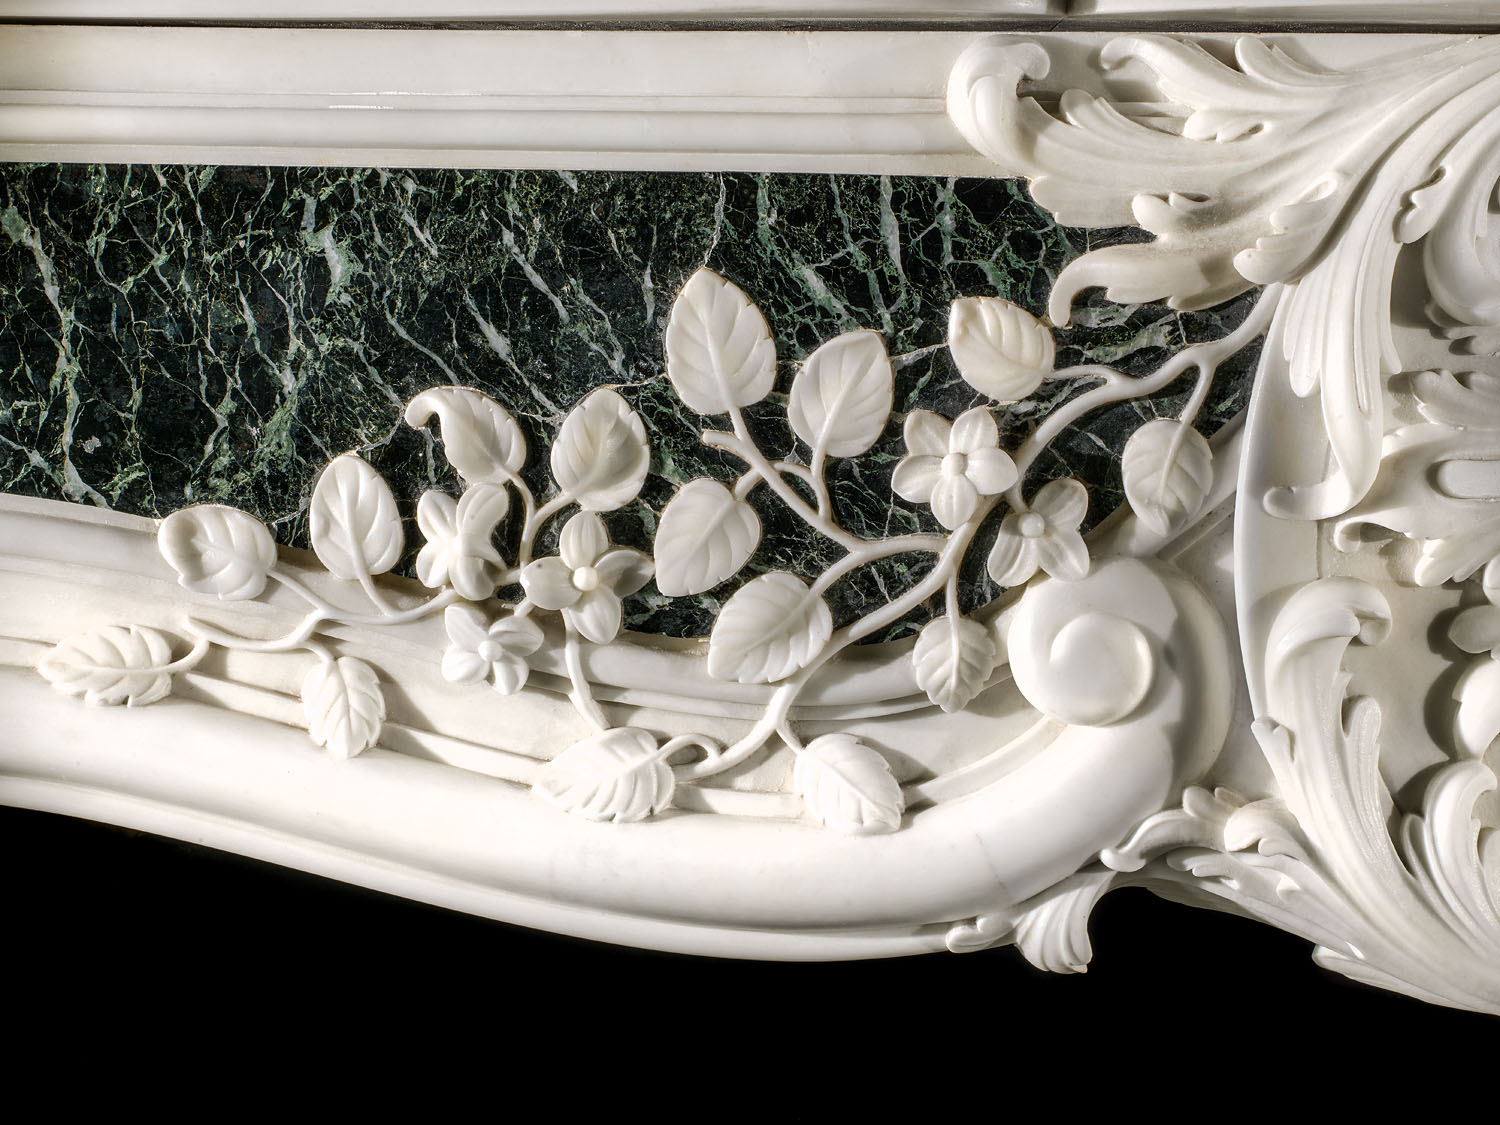 A rare Statuary & Verde Antico Marble George II Rococo Fireplace Mantel from Minto House, Roxburghshire